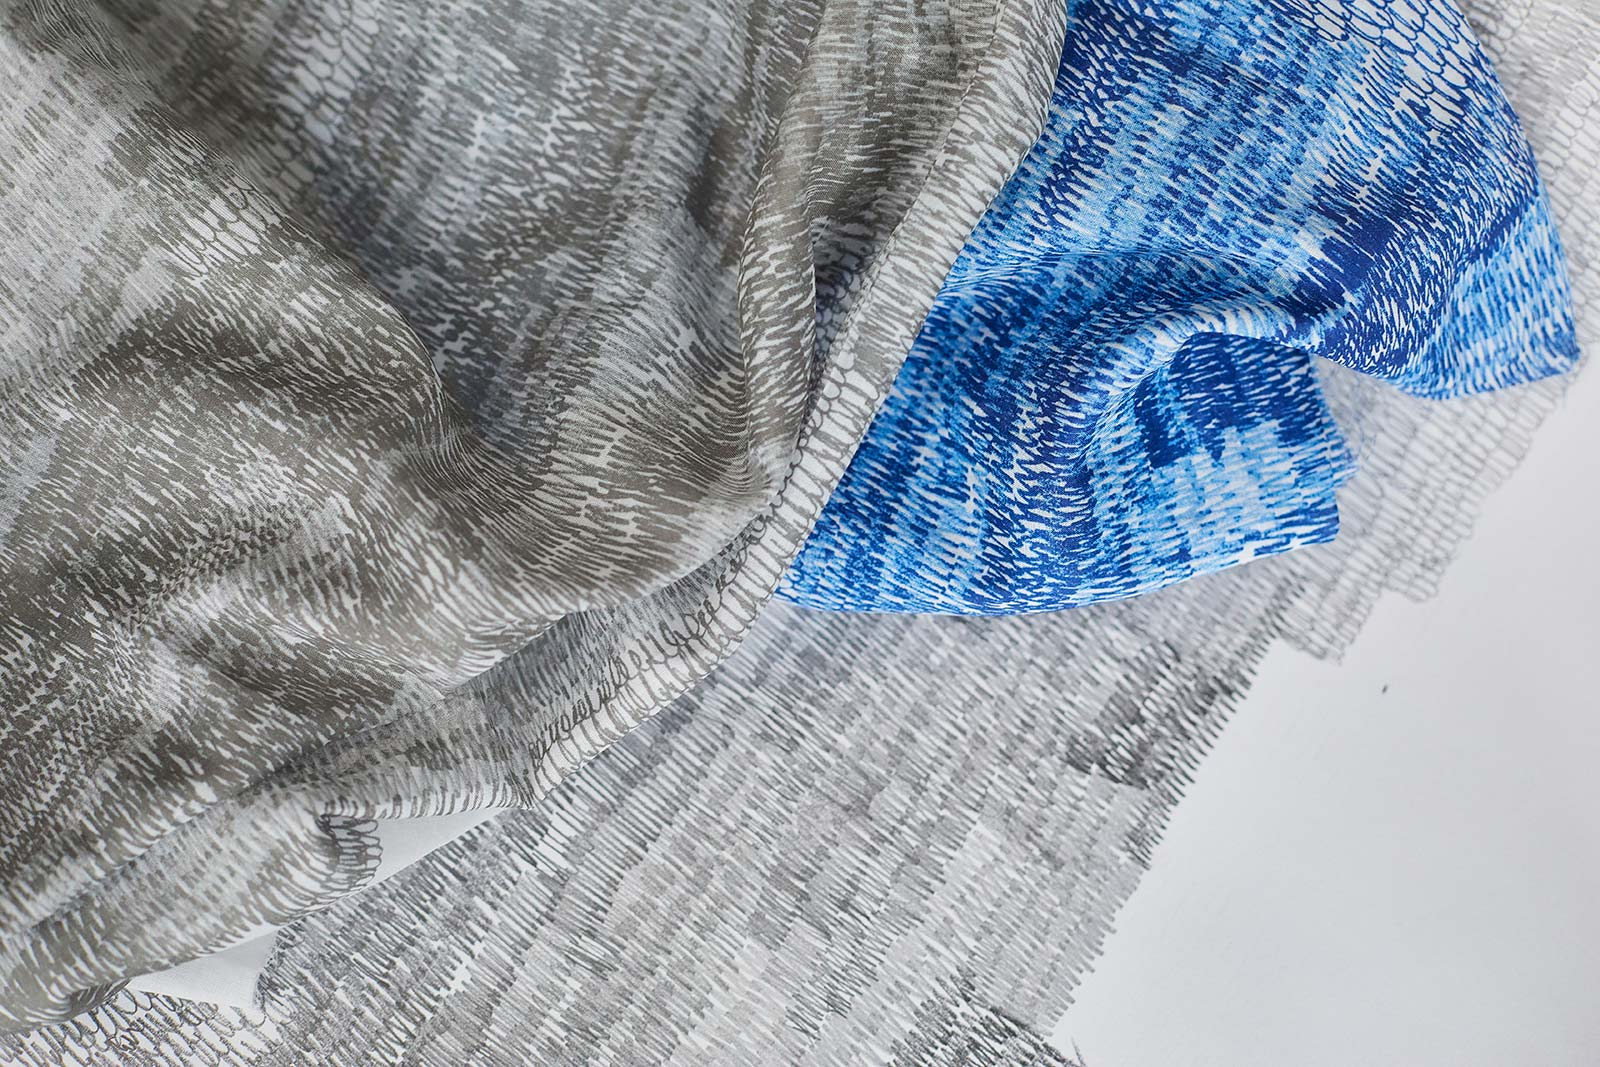 Cloth designs by BA Fashion and BA Textile Design Course Leader Kate Farley - showing blue and grey cloth